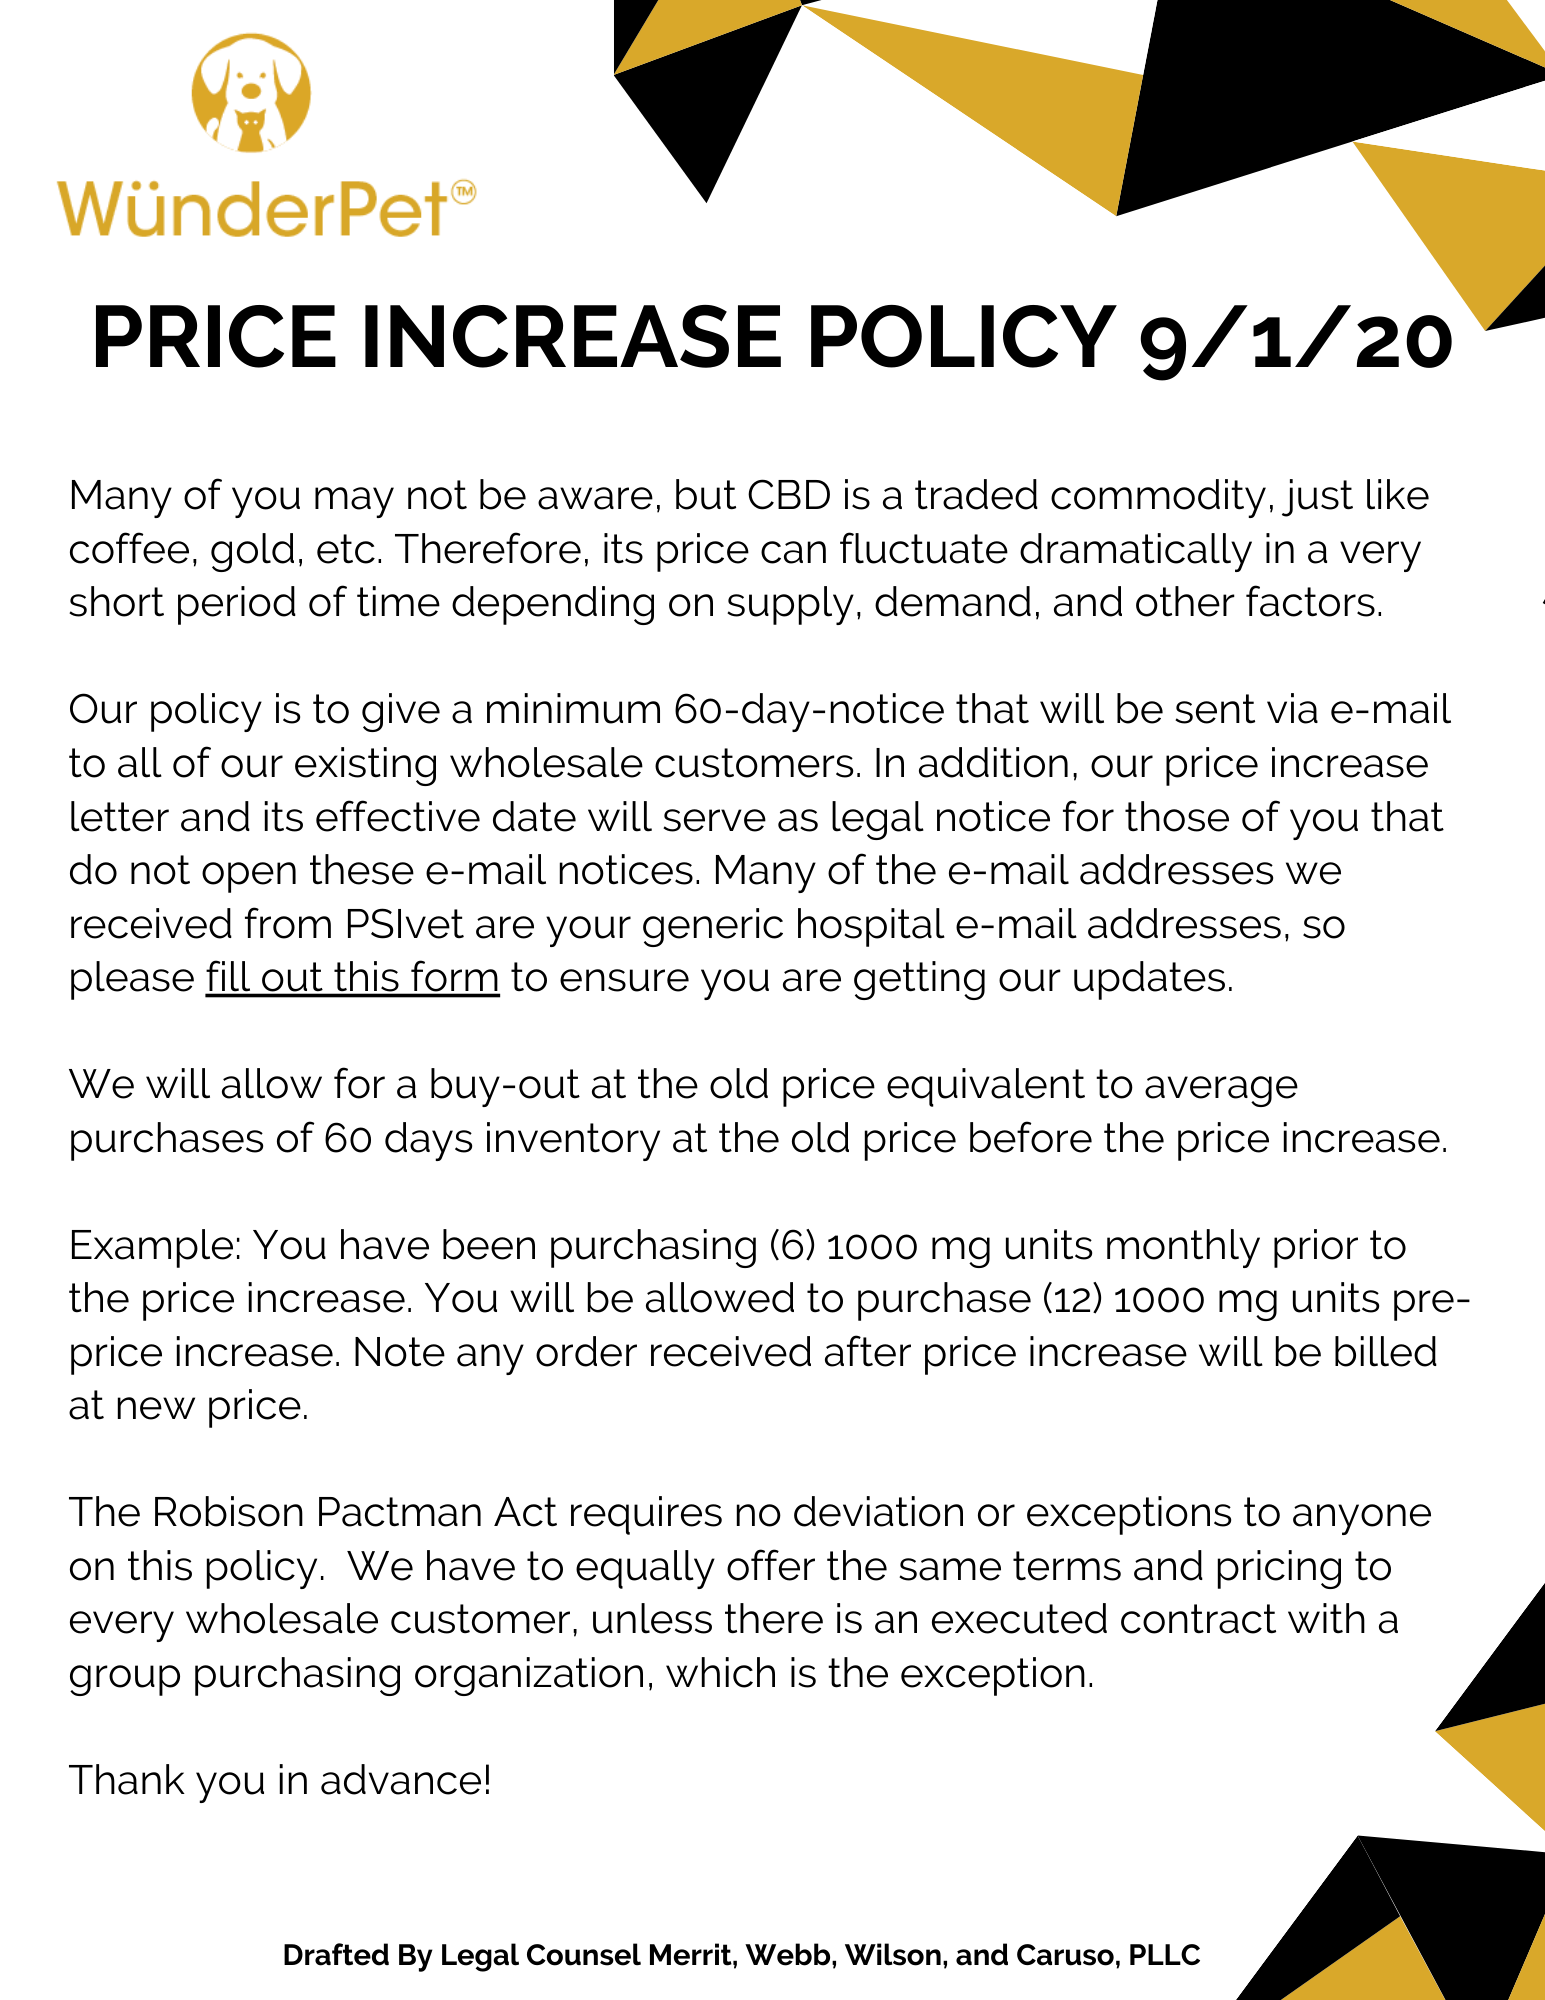 WünderPet Price Increase Policy 8.26.20